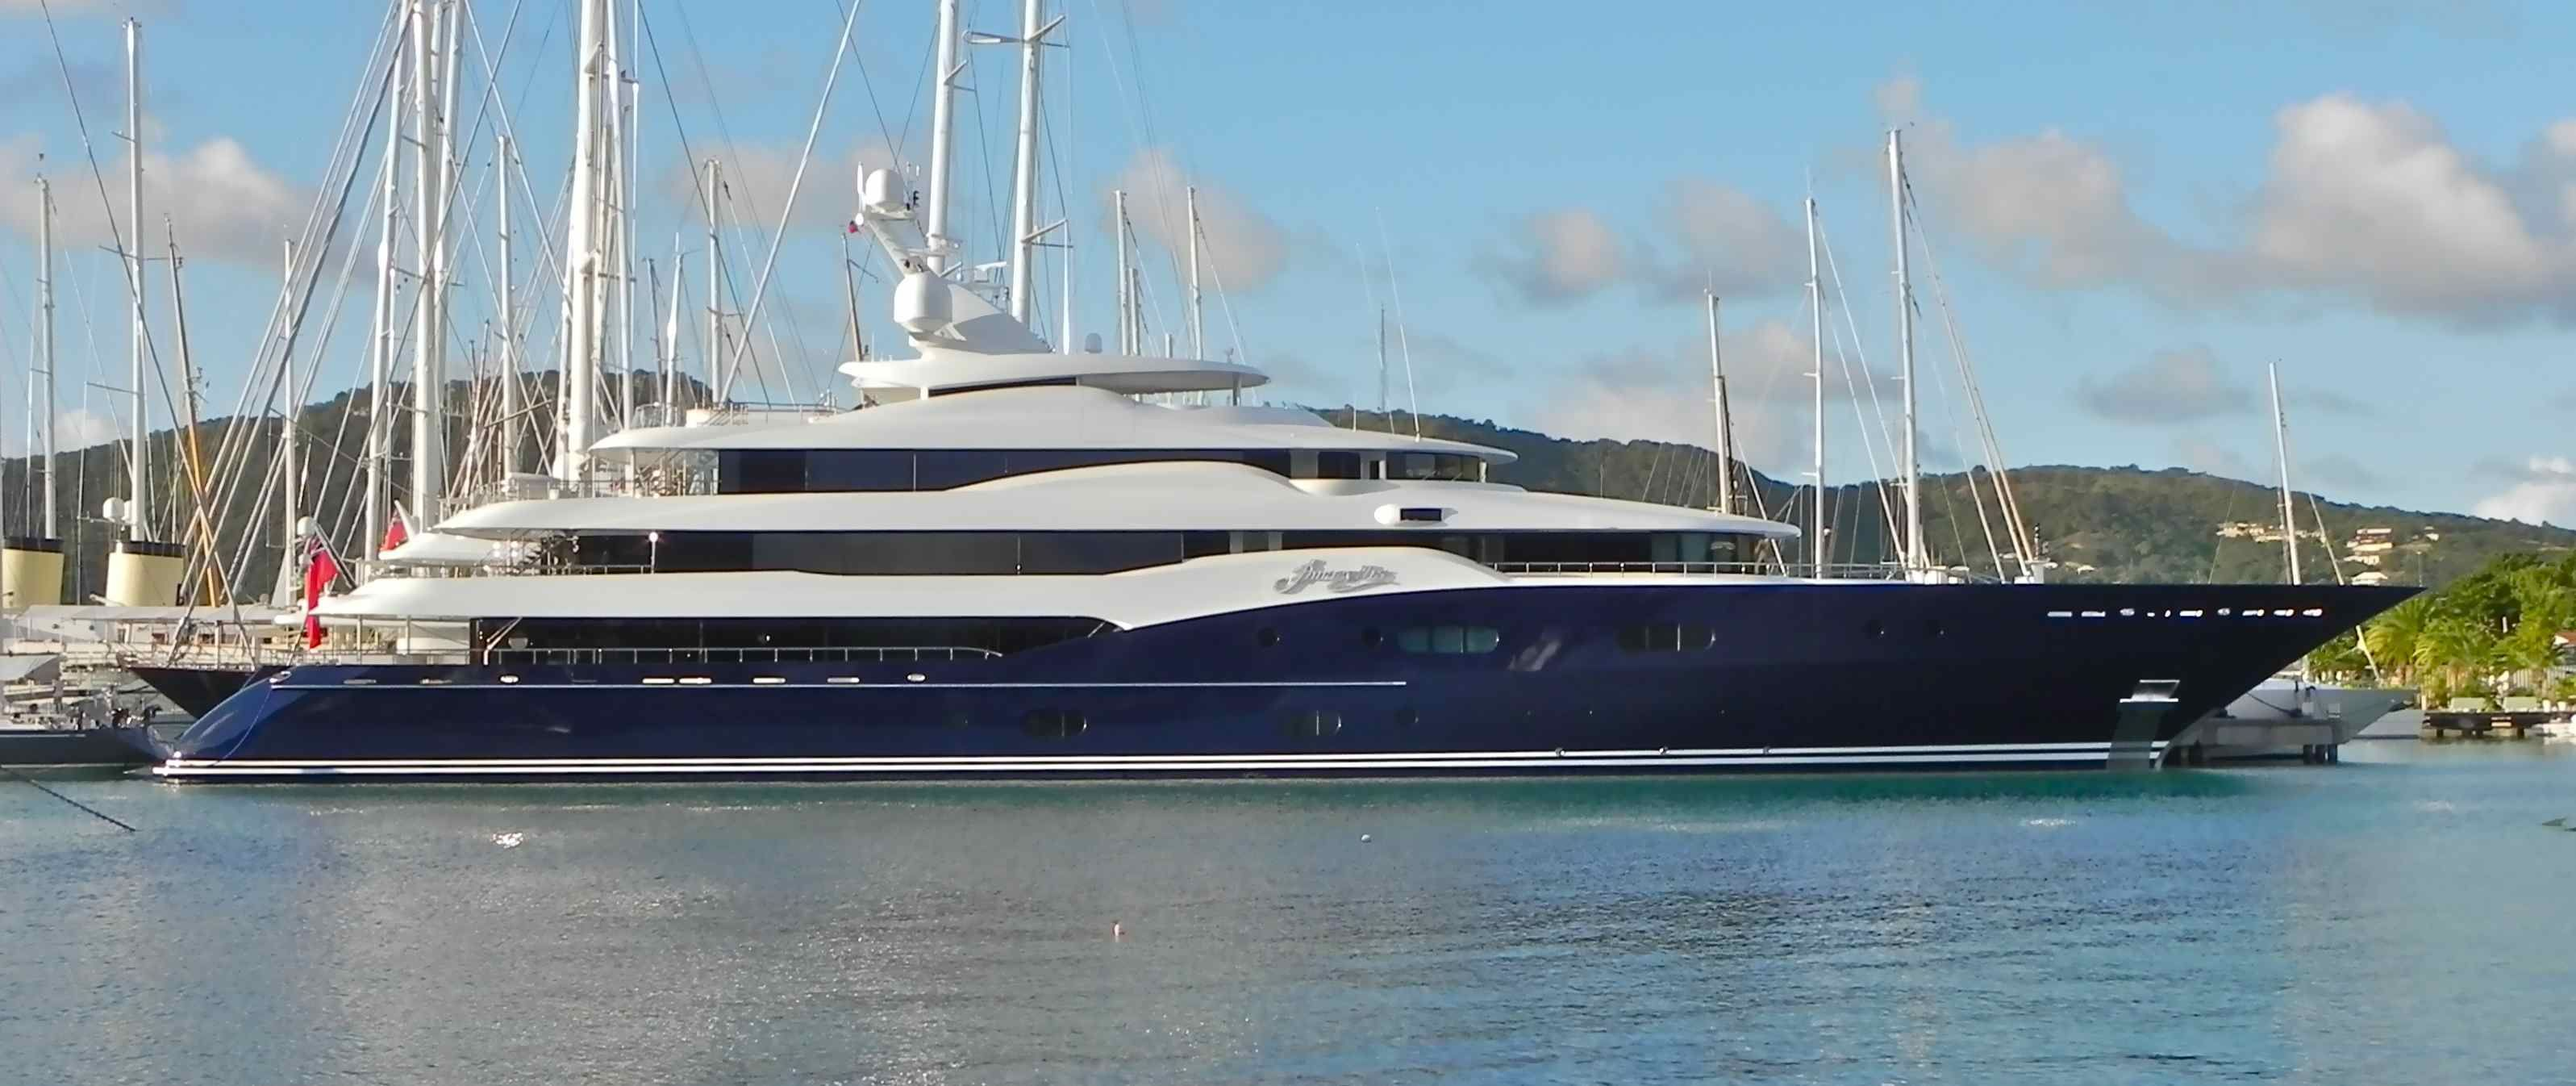 The Oceanco Amaryllis In Falmouth Harbour Antigua By Marilyn Mower